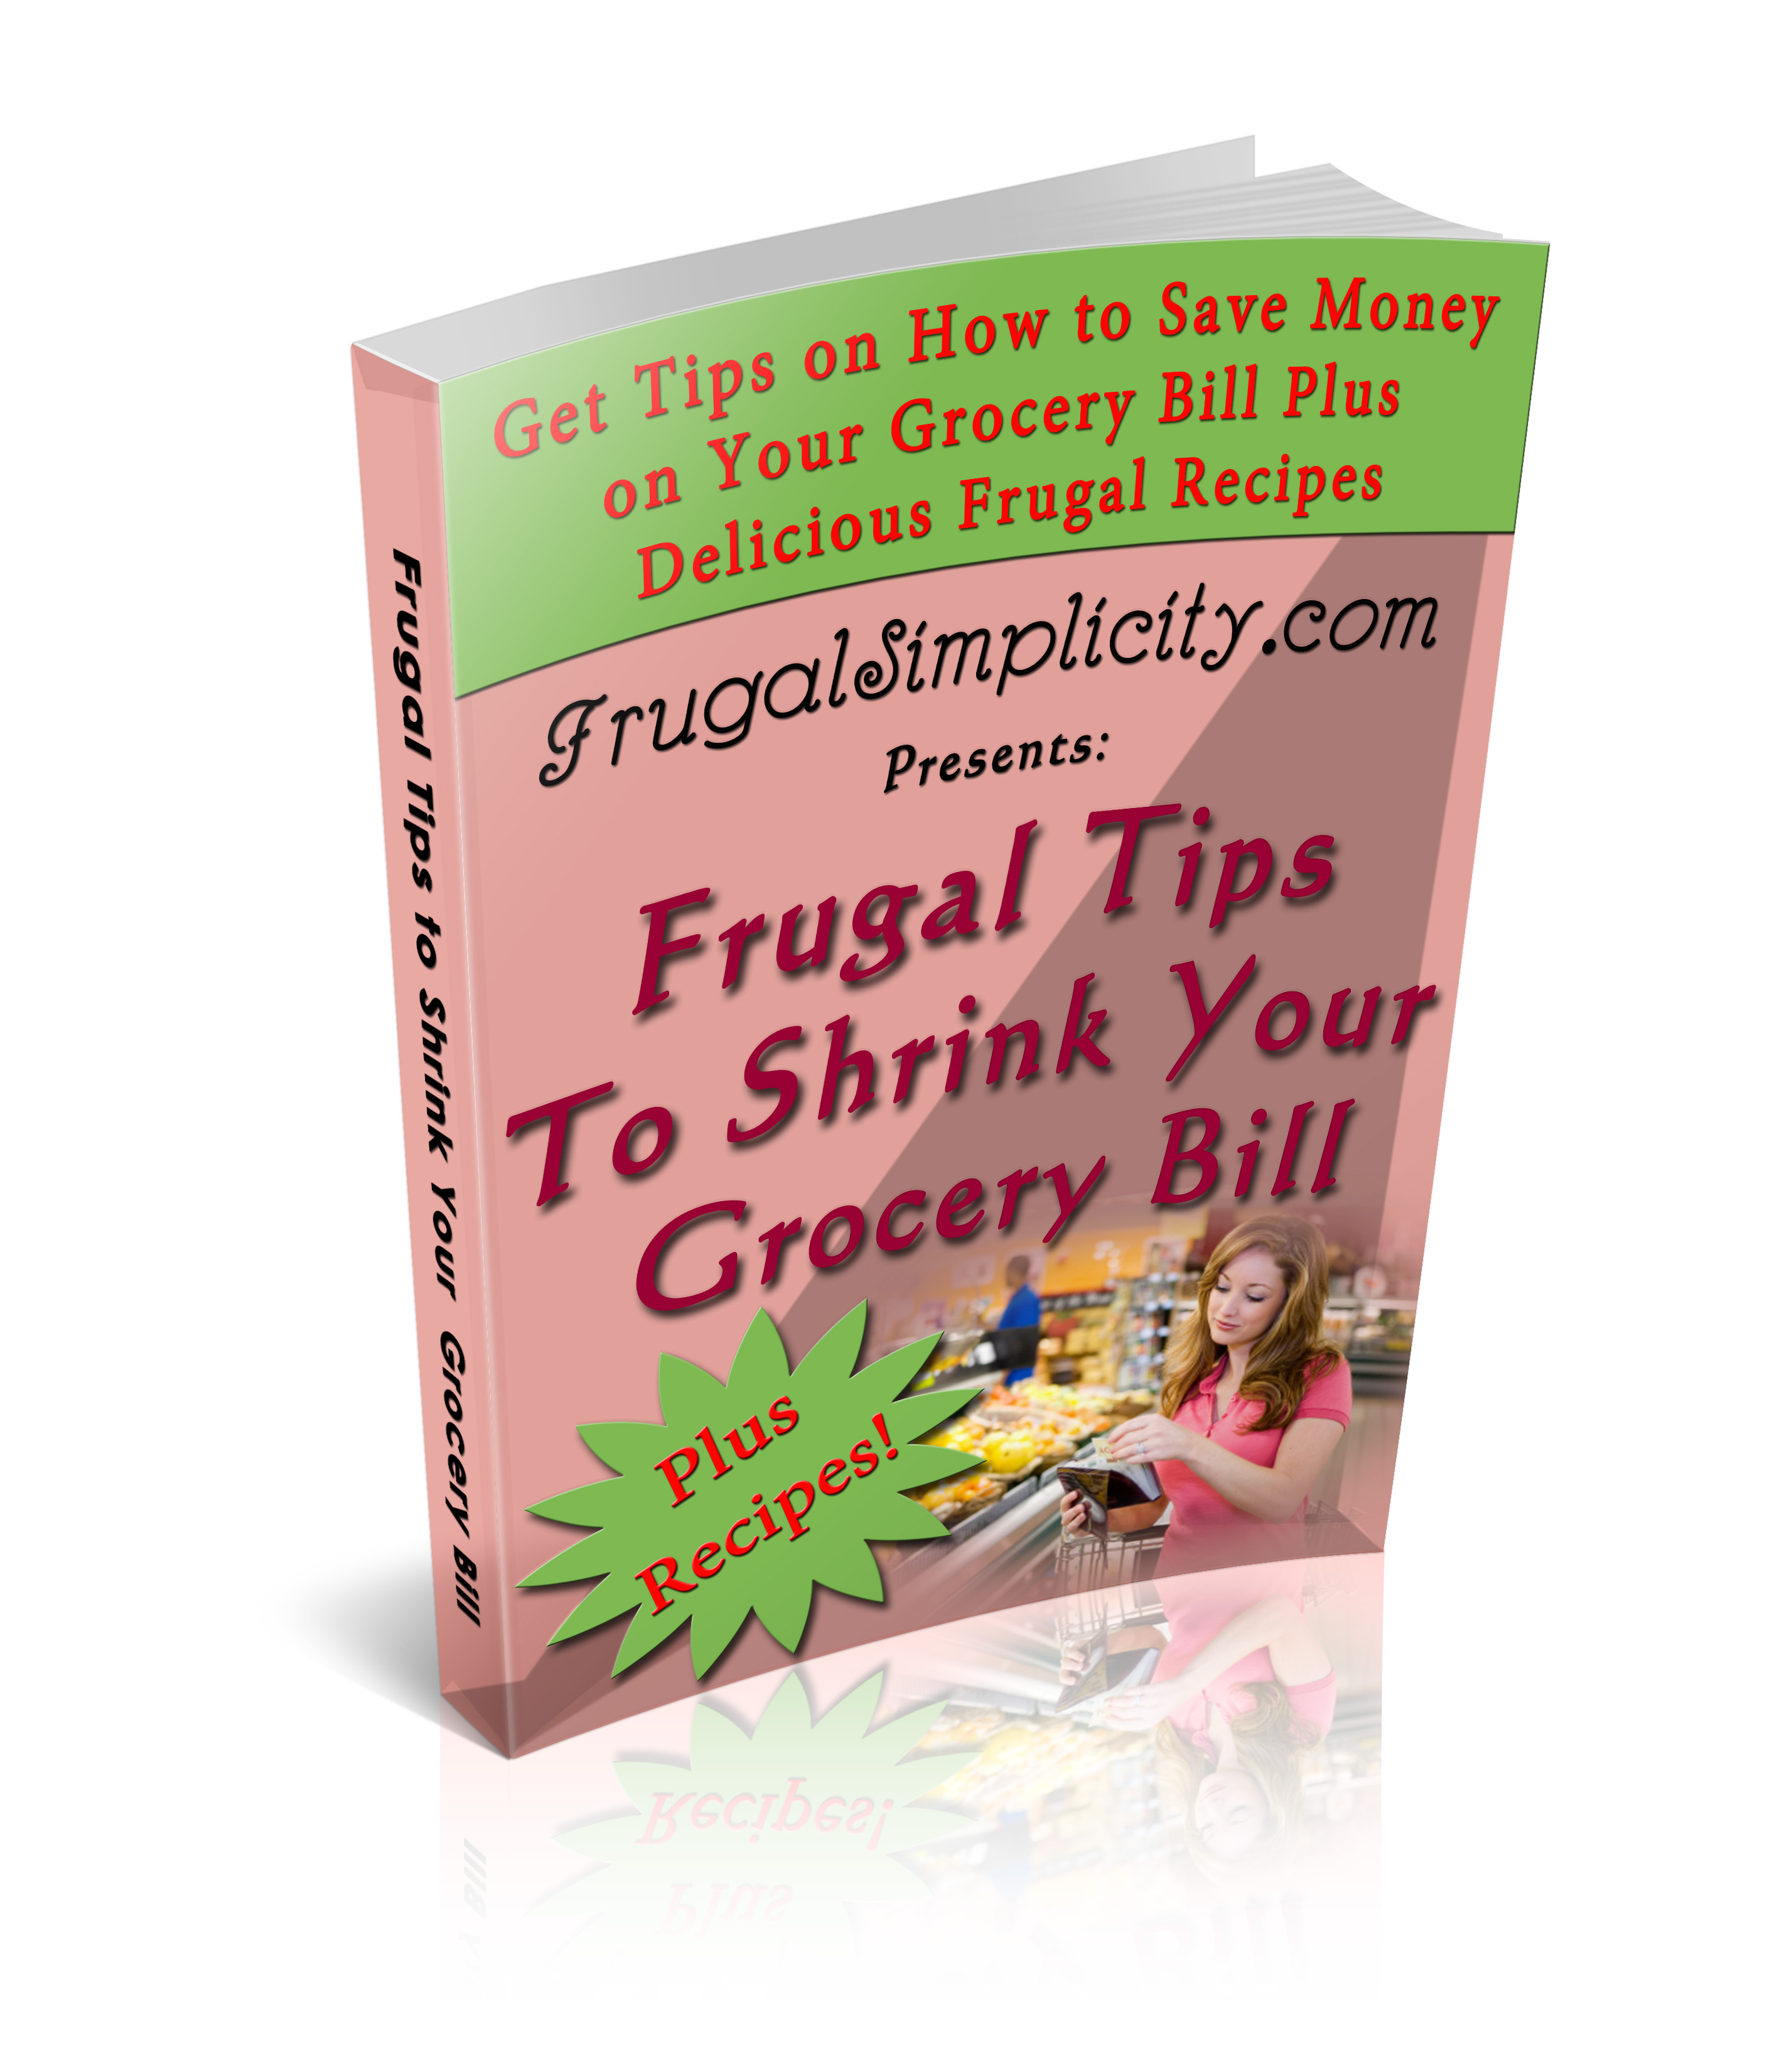 Frugal Tips to Shrink Your Grocery Bill